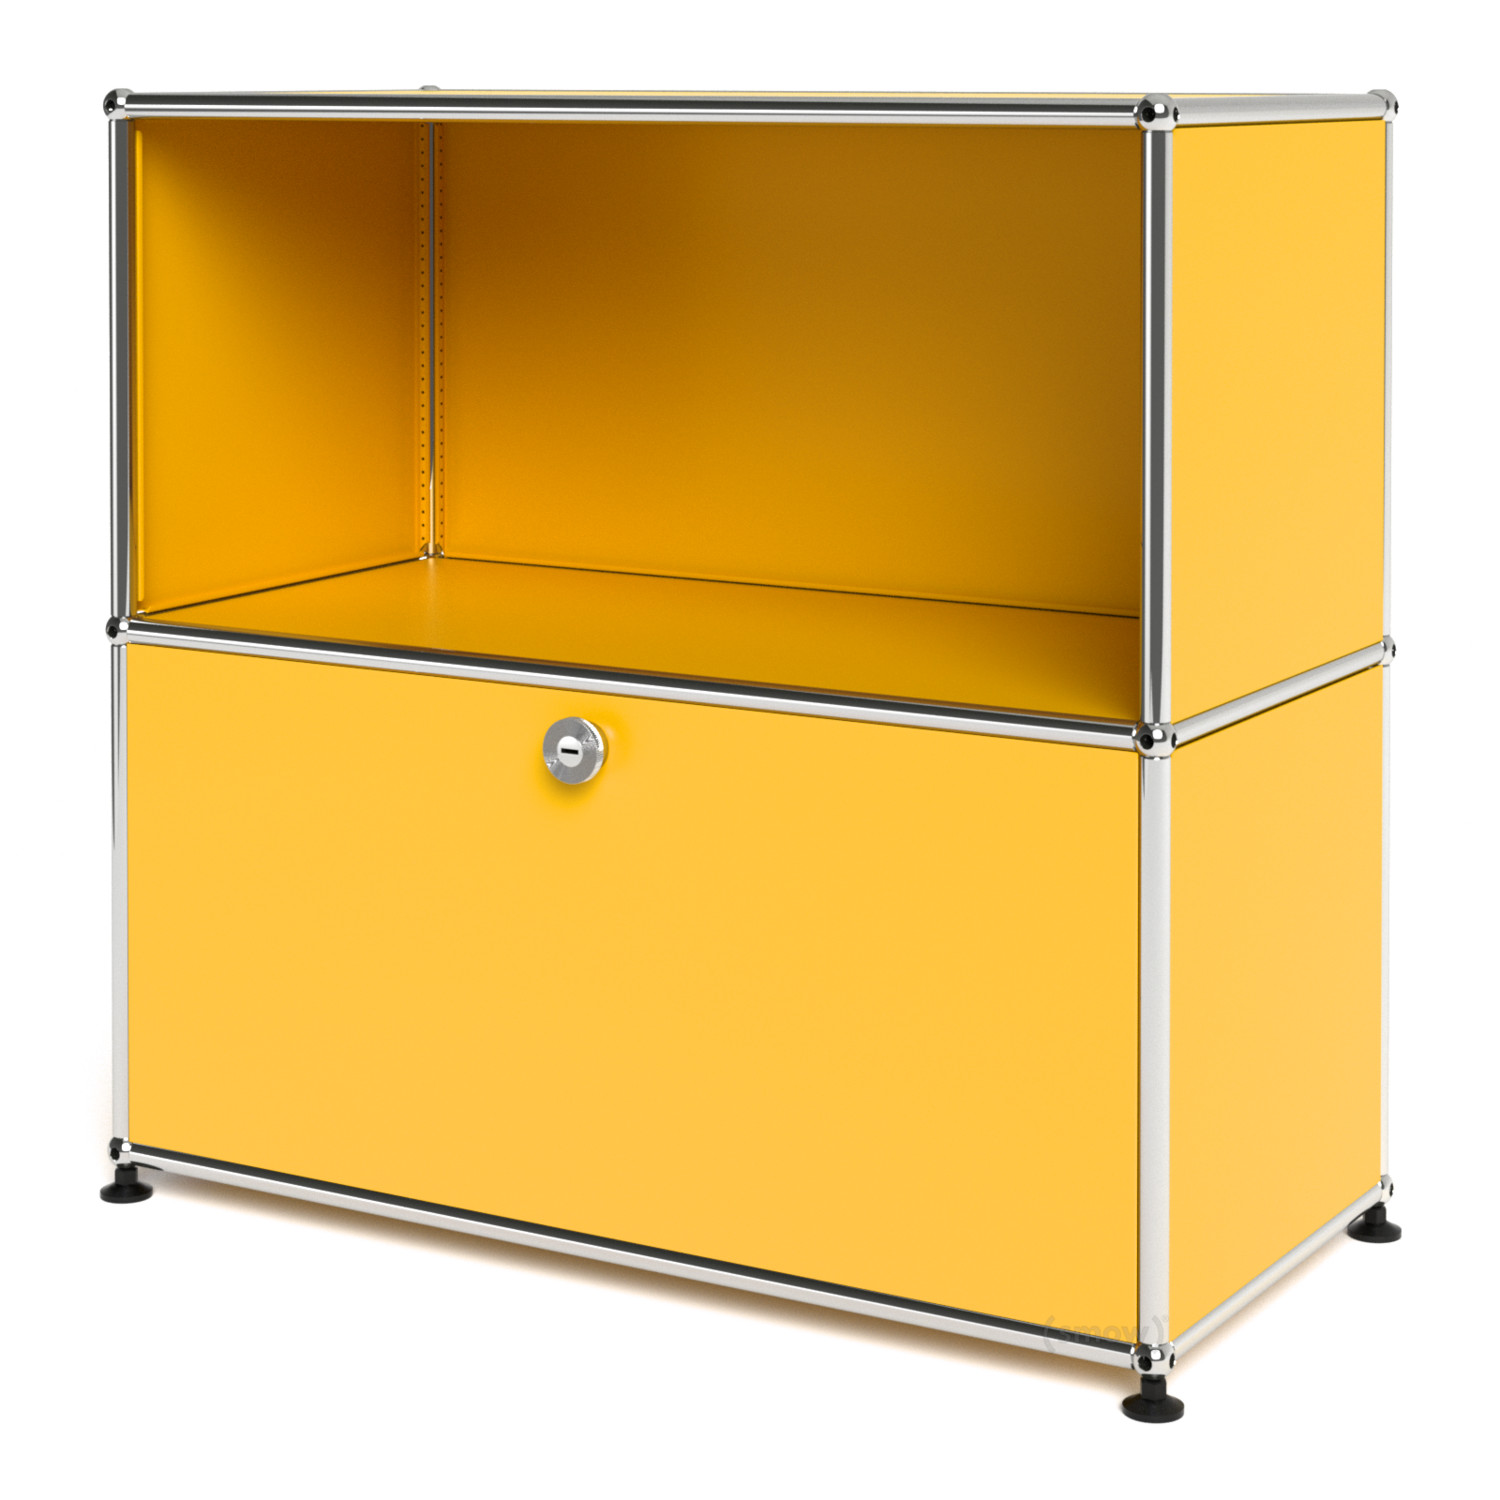 Usm haller sideboard m customisable golden yellow ral for Sideboard usm